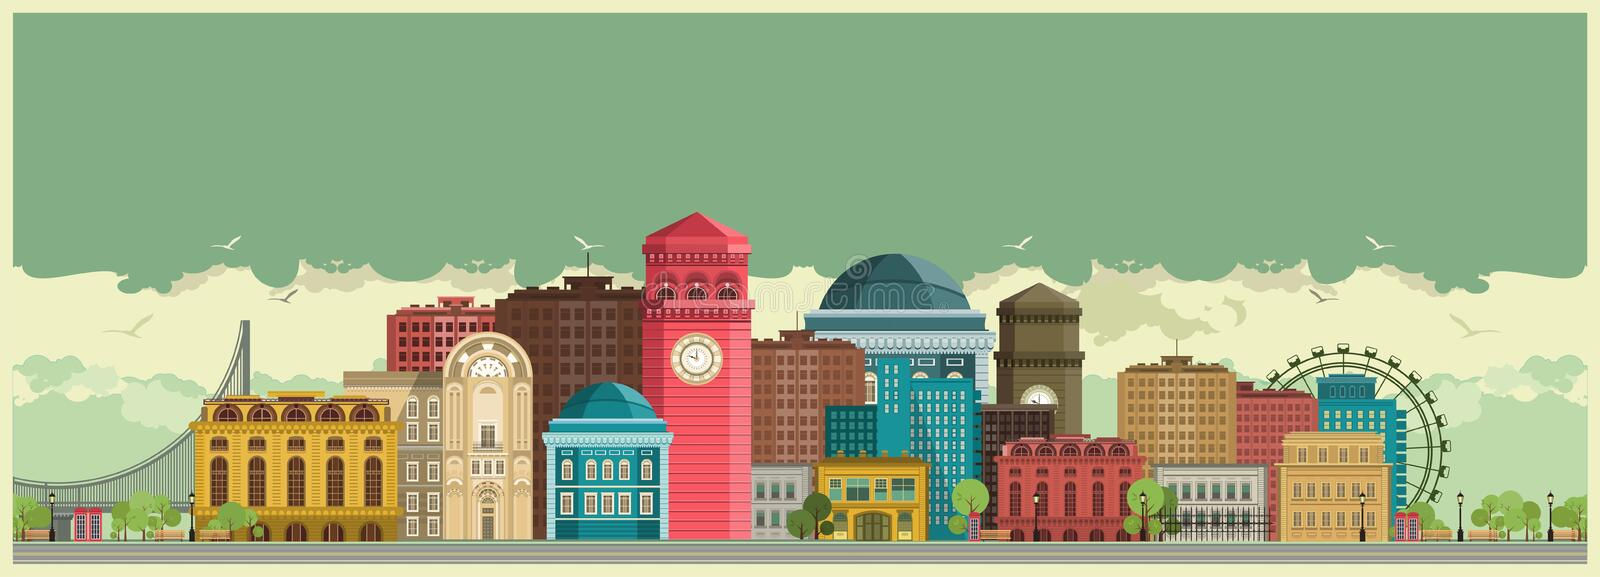 Fond de ville illustration stock